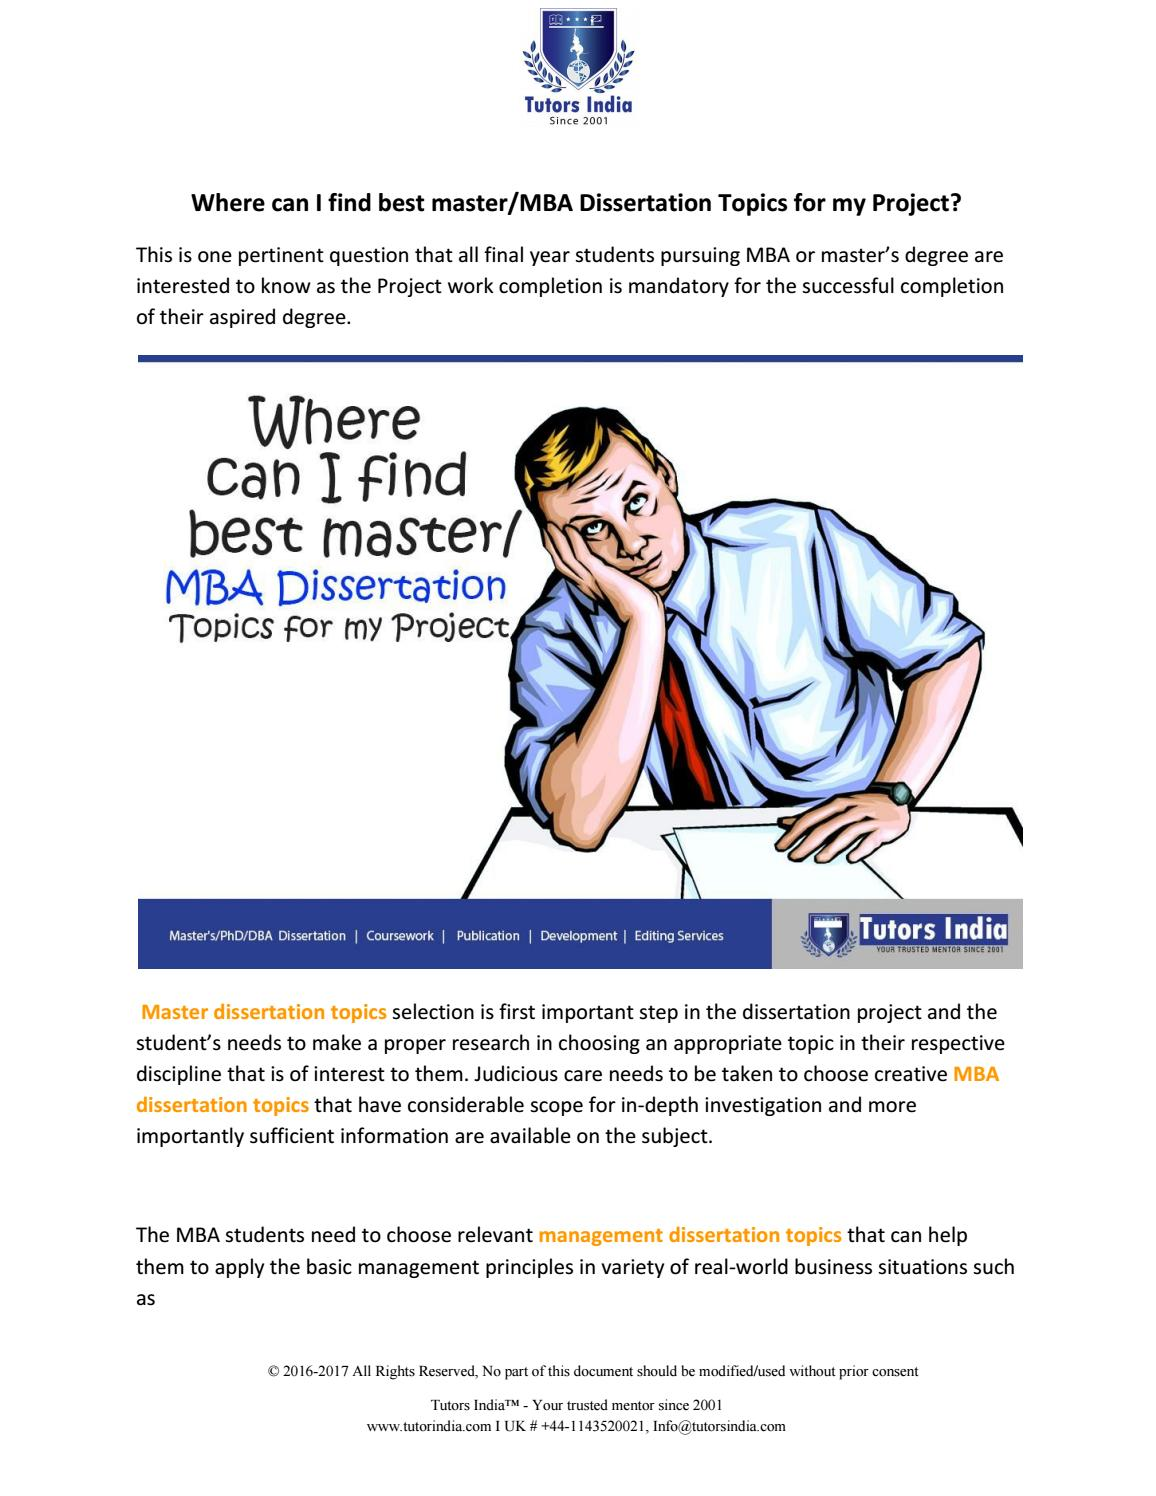 dissertation projects for mba marketing When you have capstone project topics mba, you can choose what topic you will discuss when it comes to writing of mba dissertation, you need to have effective tips to become successful the time you know some capstone project topics for mba marketing, begin doing a research.